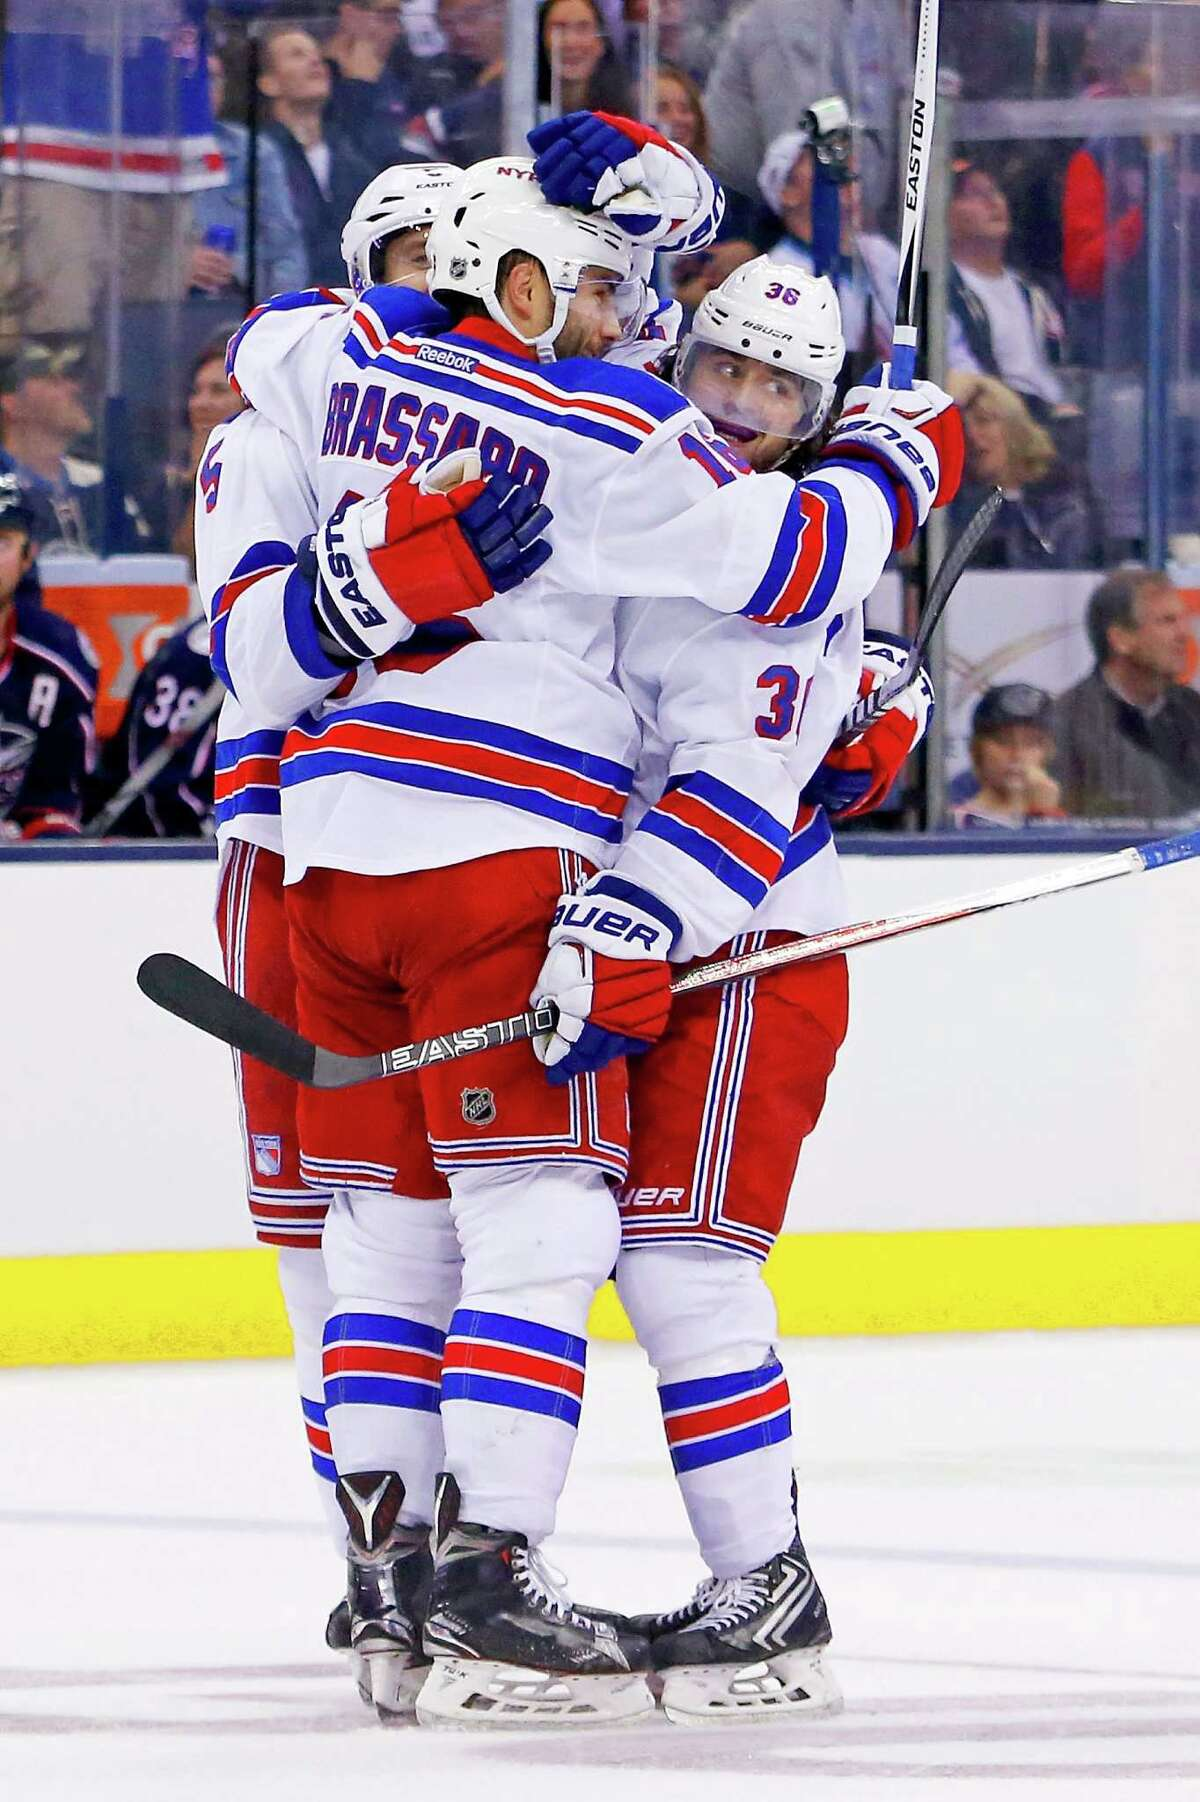 COLUMBUS, OH - OCTOBER 9: Dan Girardi #5 and Derick Brassard #16 congratulate Mats Zuccarello #36, all of the New York Rangers after scoring his second goal of the game against the Columbus Blue Jackets during the third period on October 9, 2015 at Nationwide Arena in Columbus, Ohio. New York defeated Columbus 4-2. (Photo by Kirk Irwin/Getty Images) ORG XMIT: 574711547